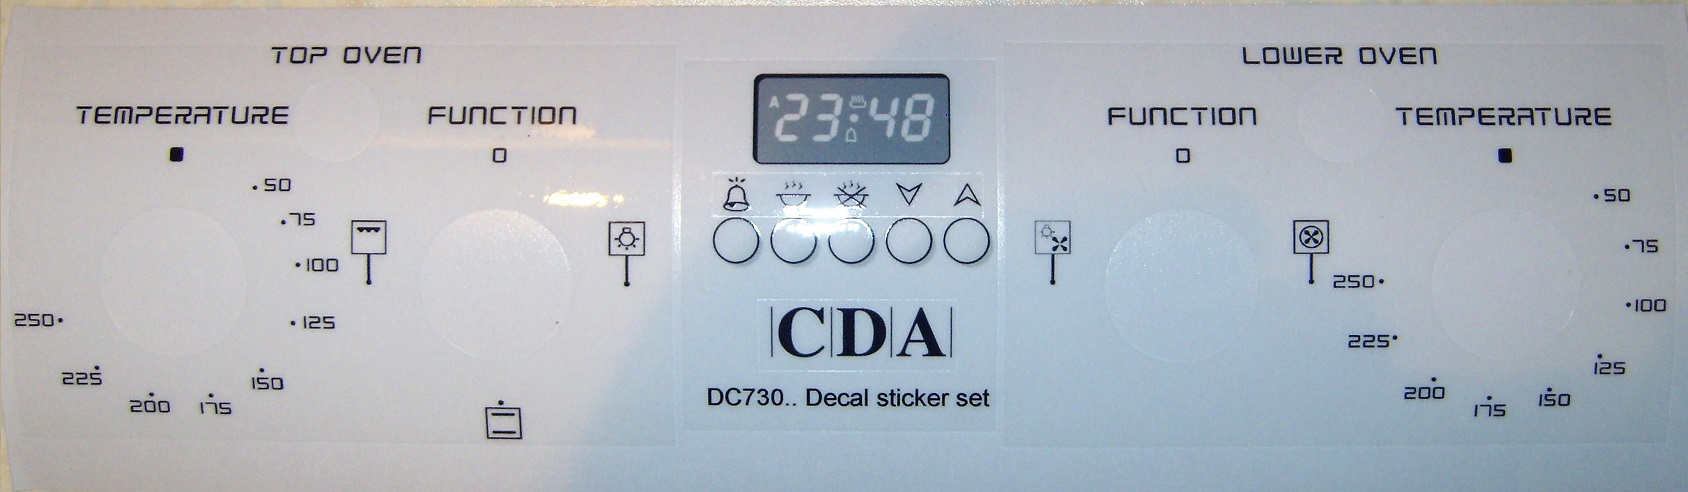 CDA DC730.. decal sticker set for worn fronts, may suit others.